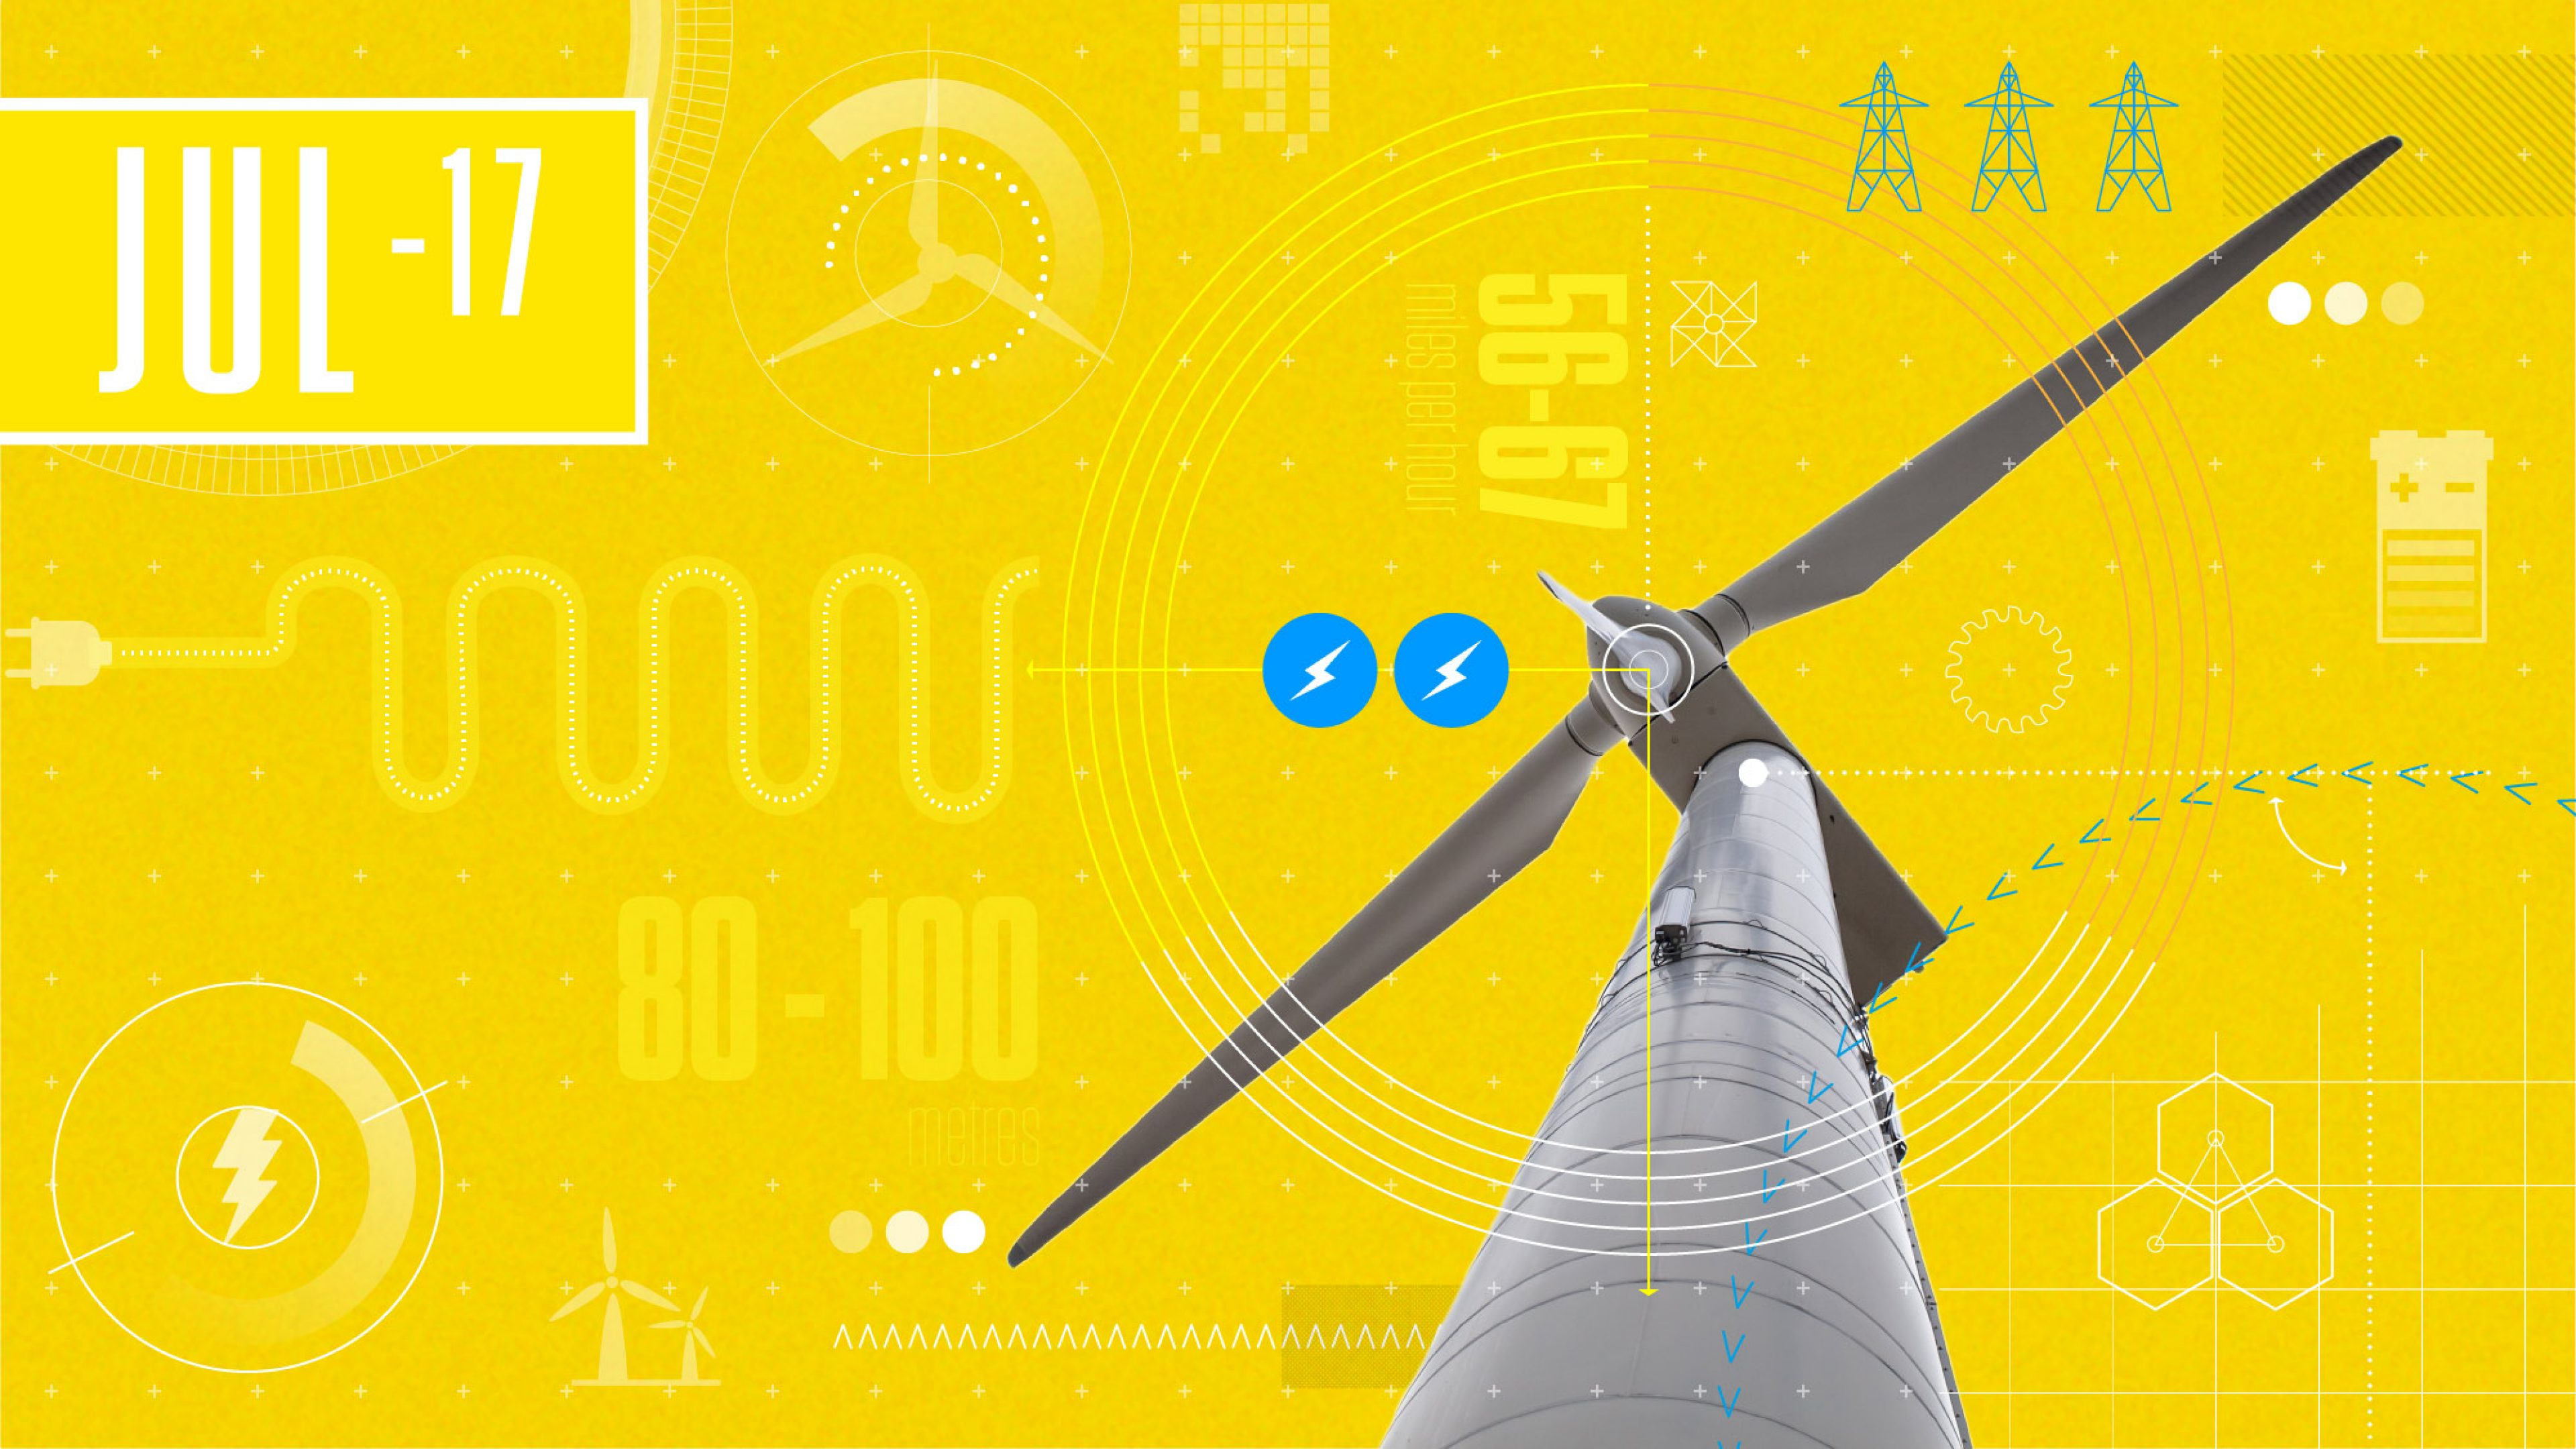 Graphic depicts wind turbine technology